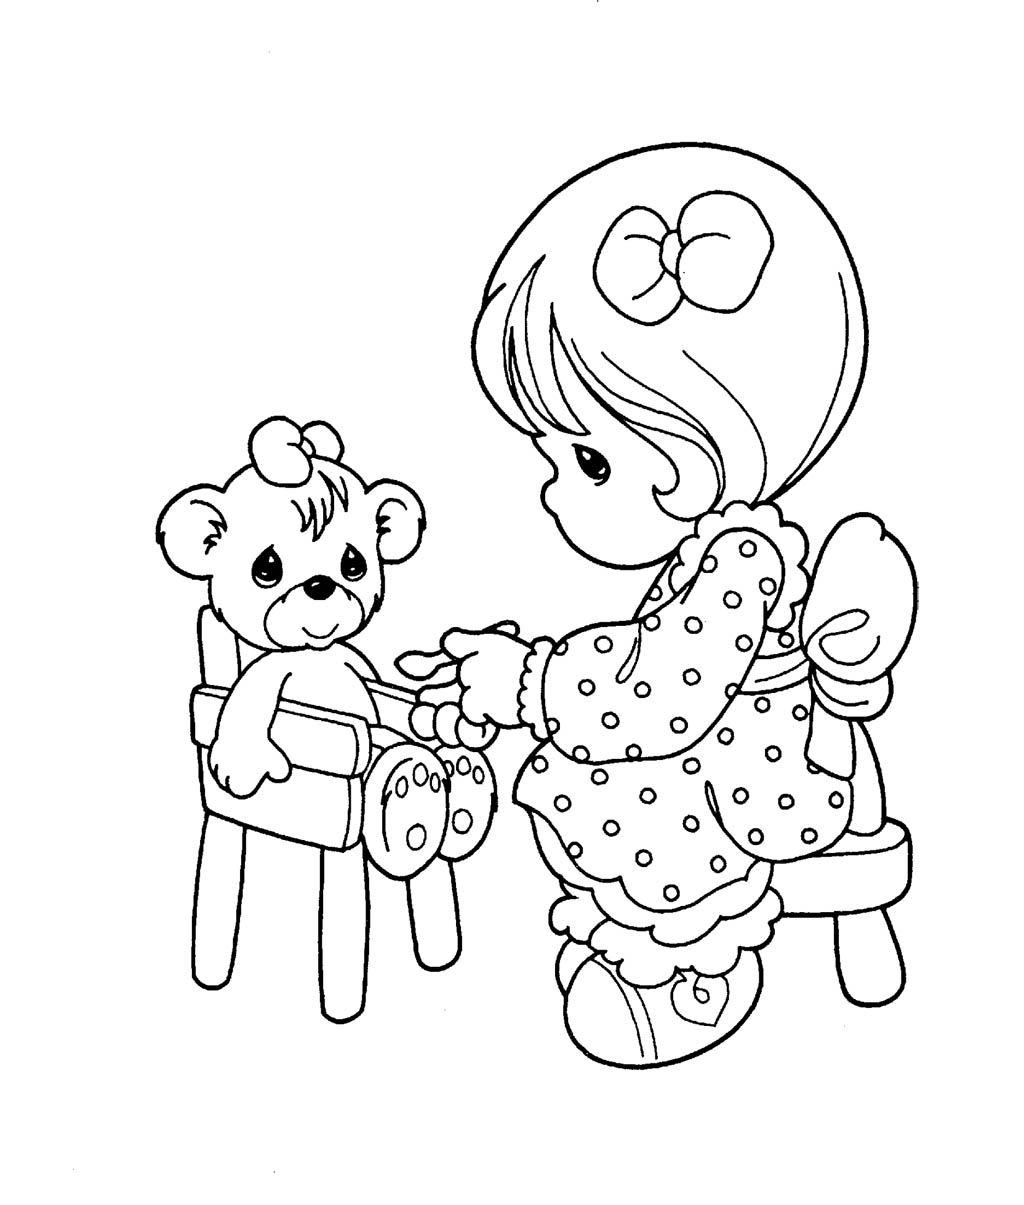 Precious Moments Was Playing Her Doll Coloring Pages For